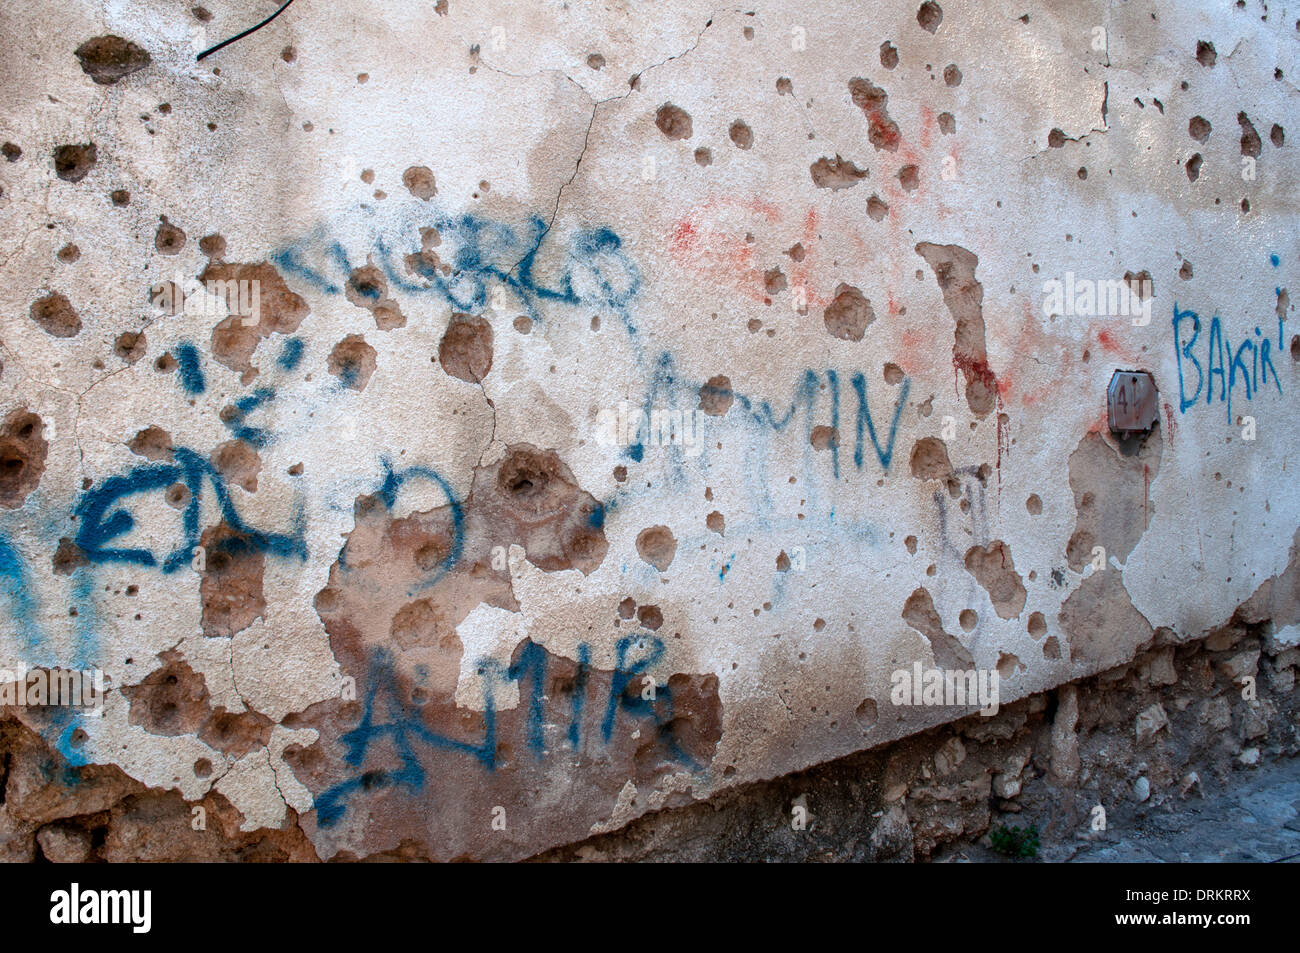 A wall riddled by bullets with graffiti, Mostar, Bosnia and Herzegovina - Stock Image